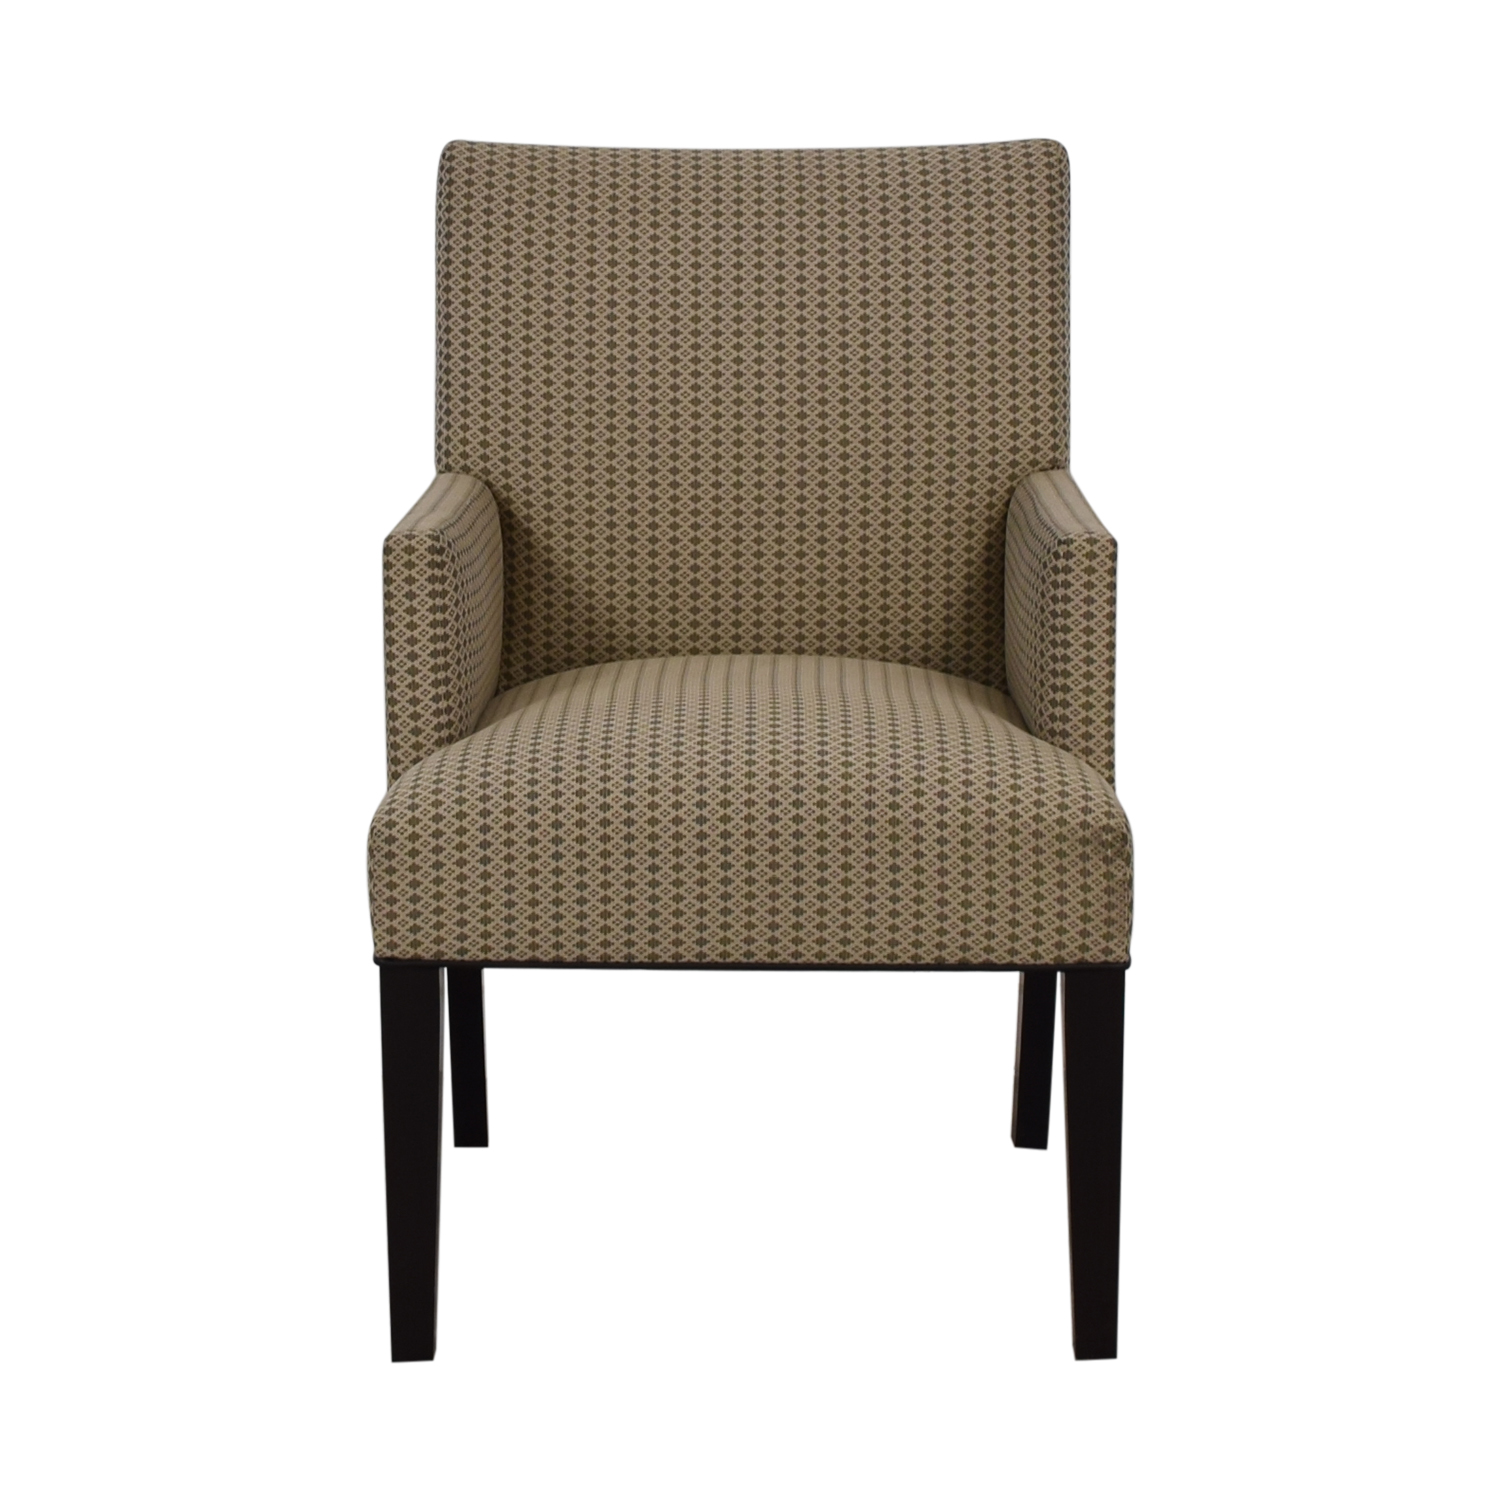 Furniture Masters Furniture Masters Beige Armchair used